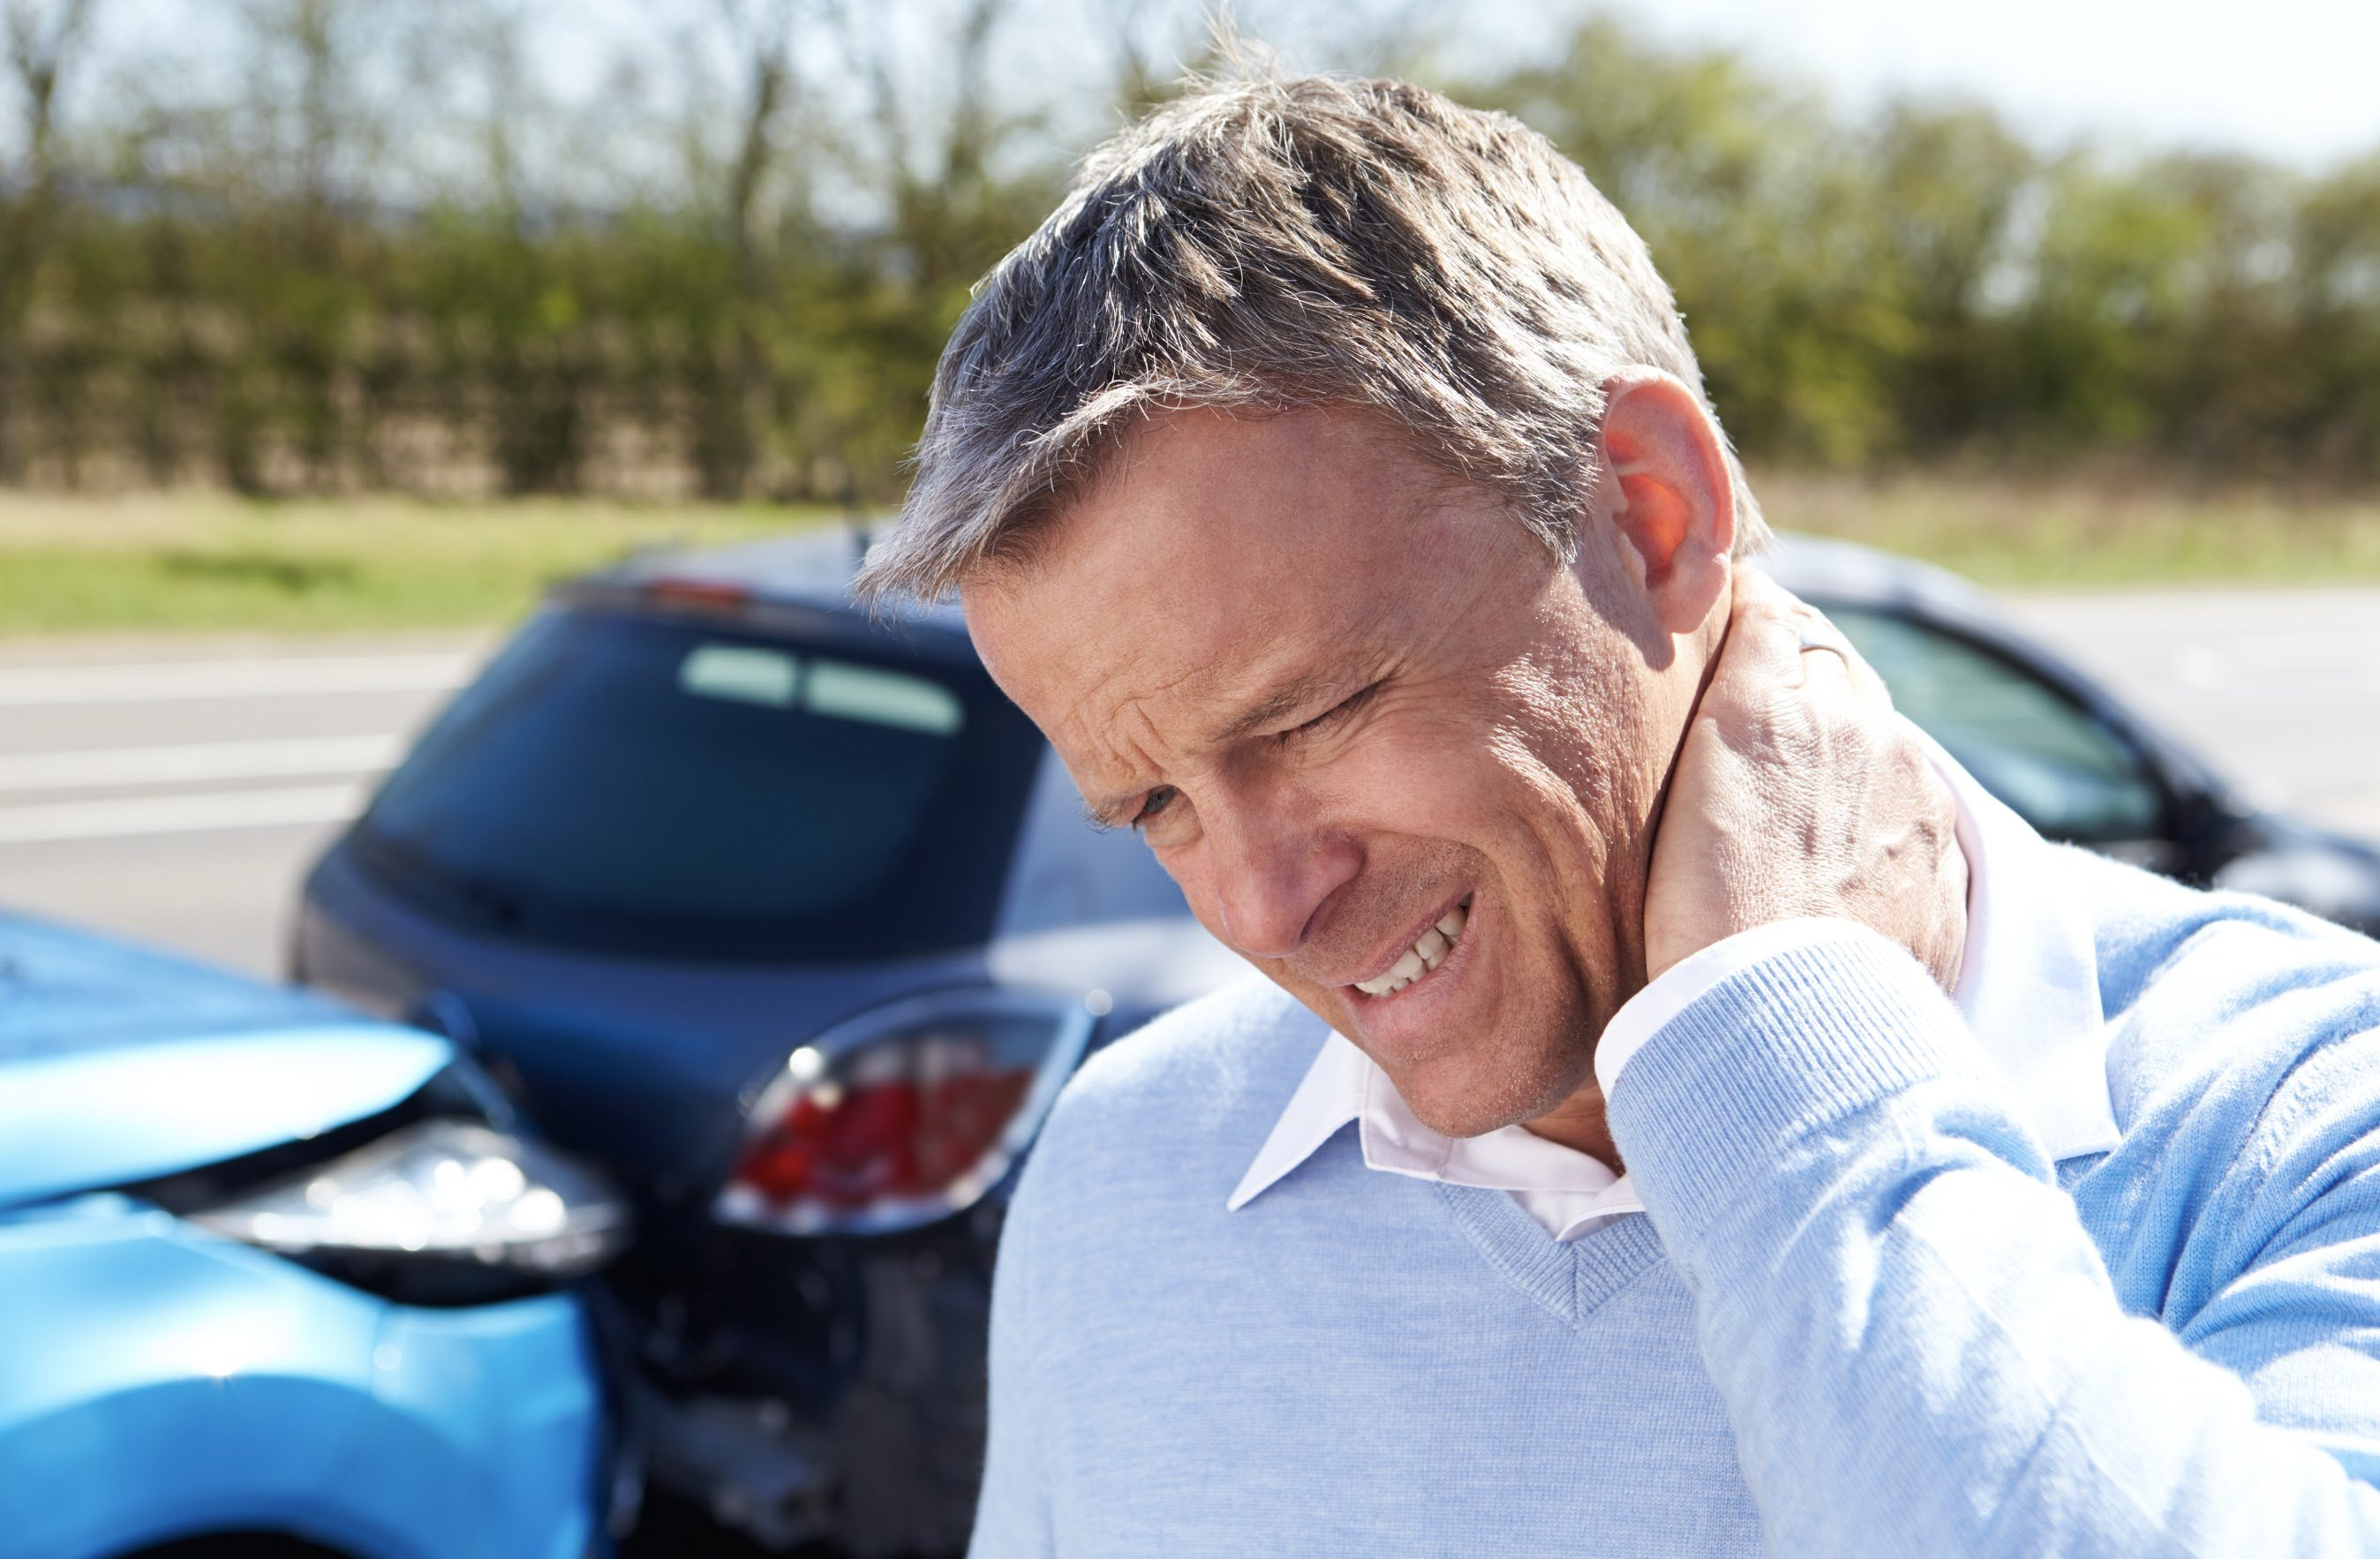 Chiropractic Care for Neck Strain/Sprains